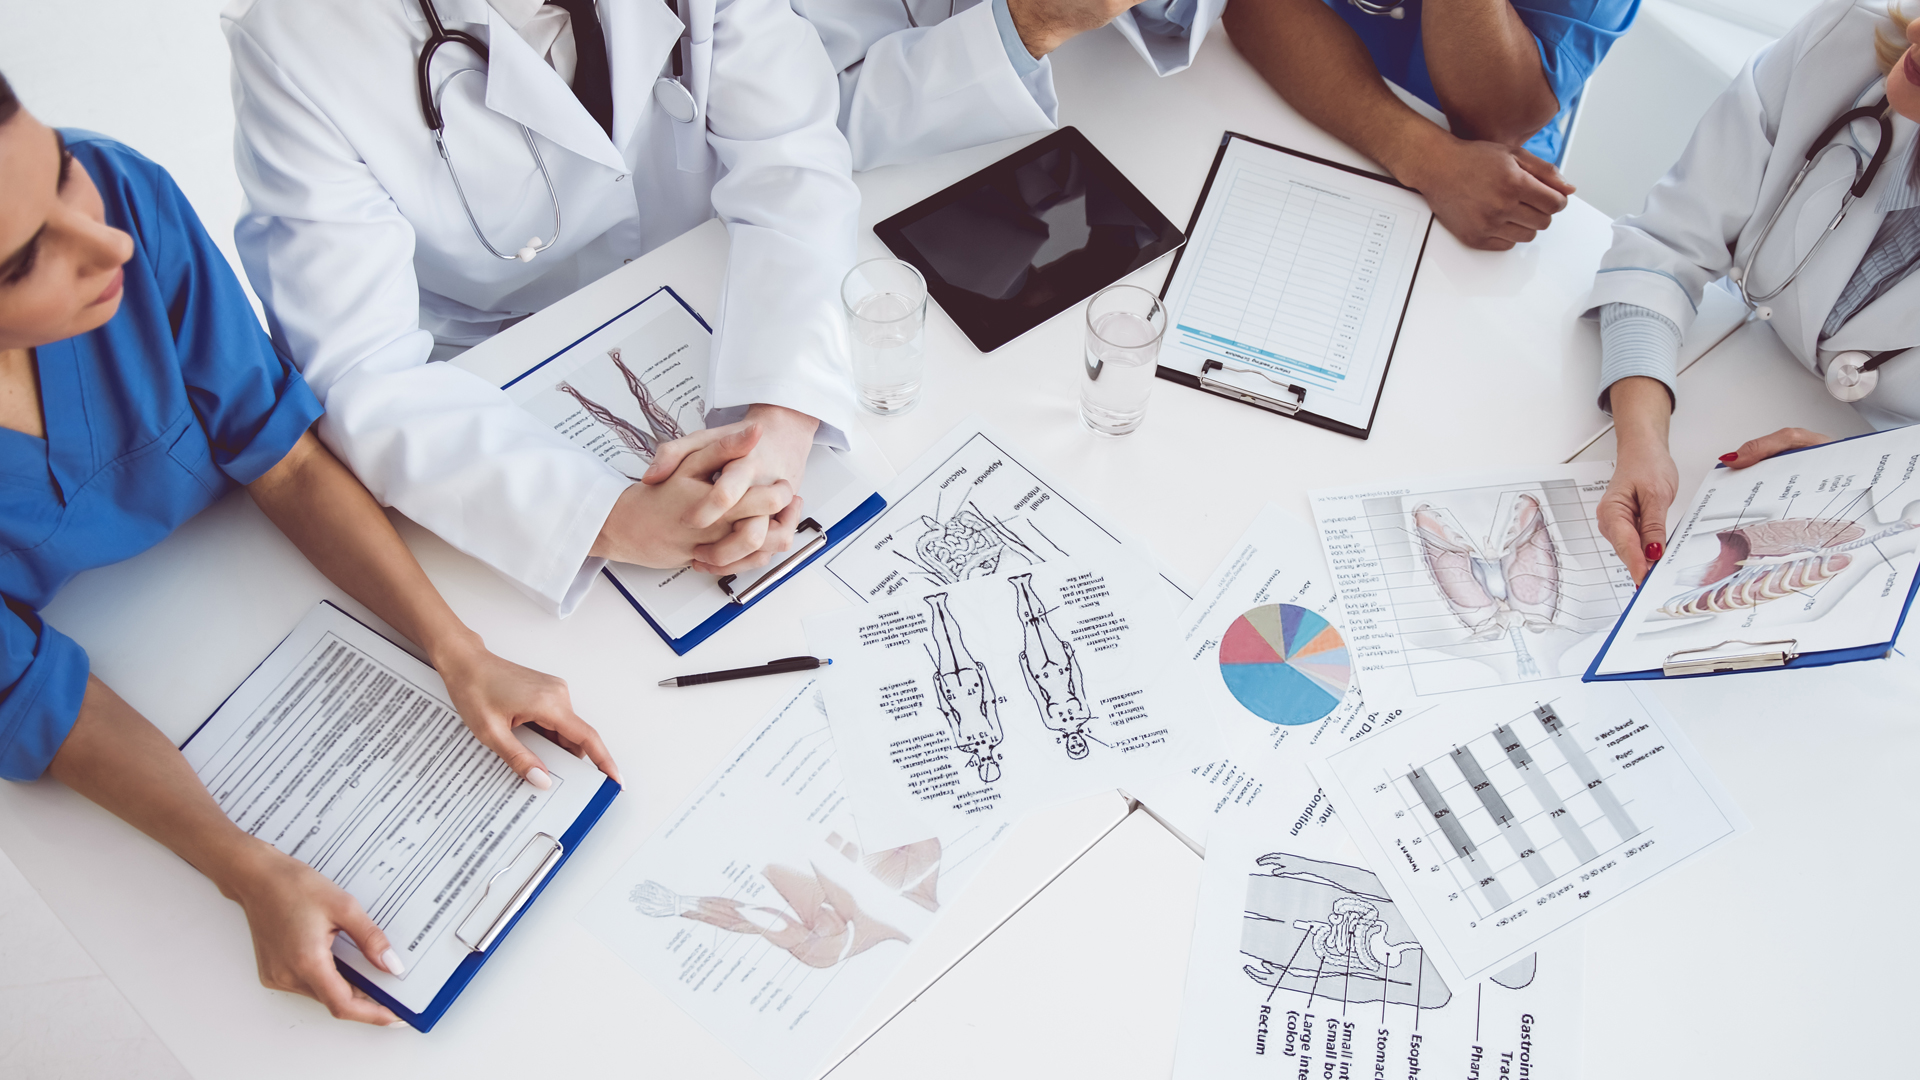 How to Design a Clinical Trial Protocol